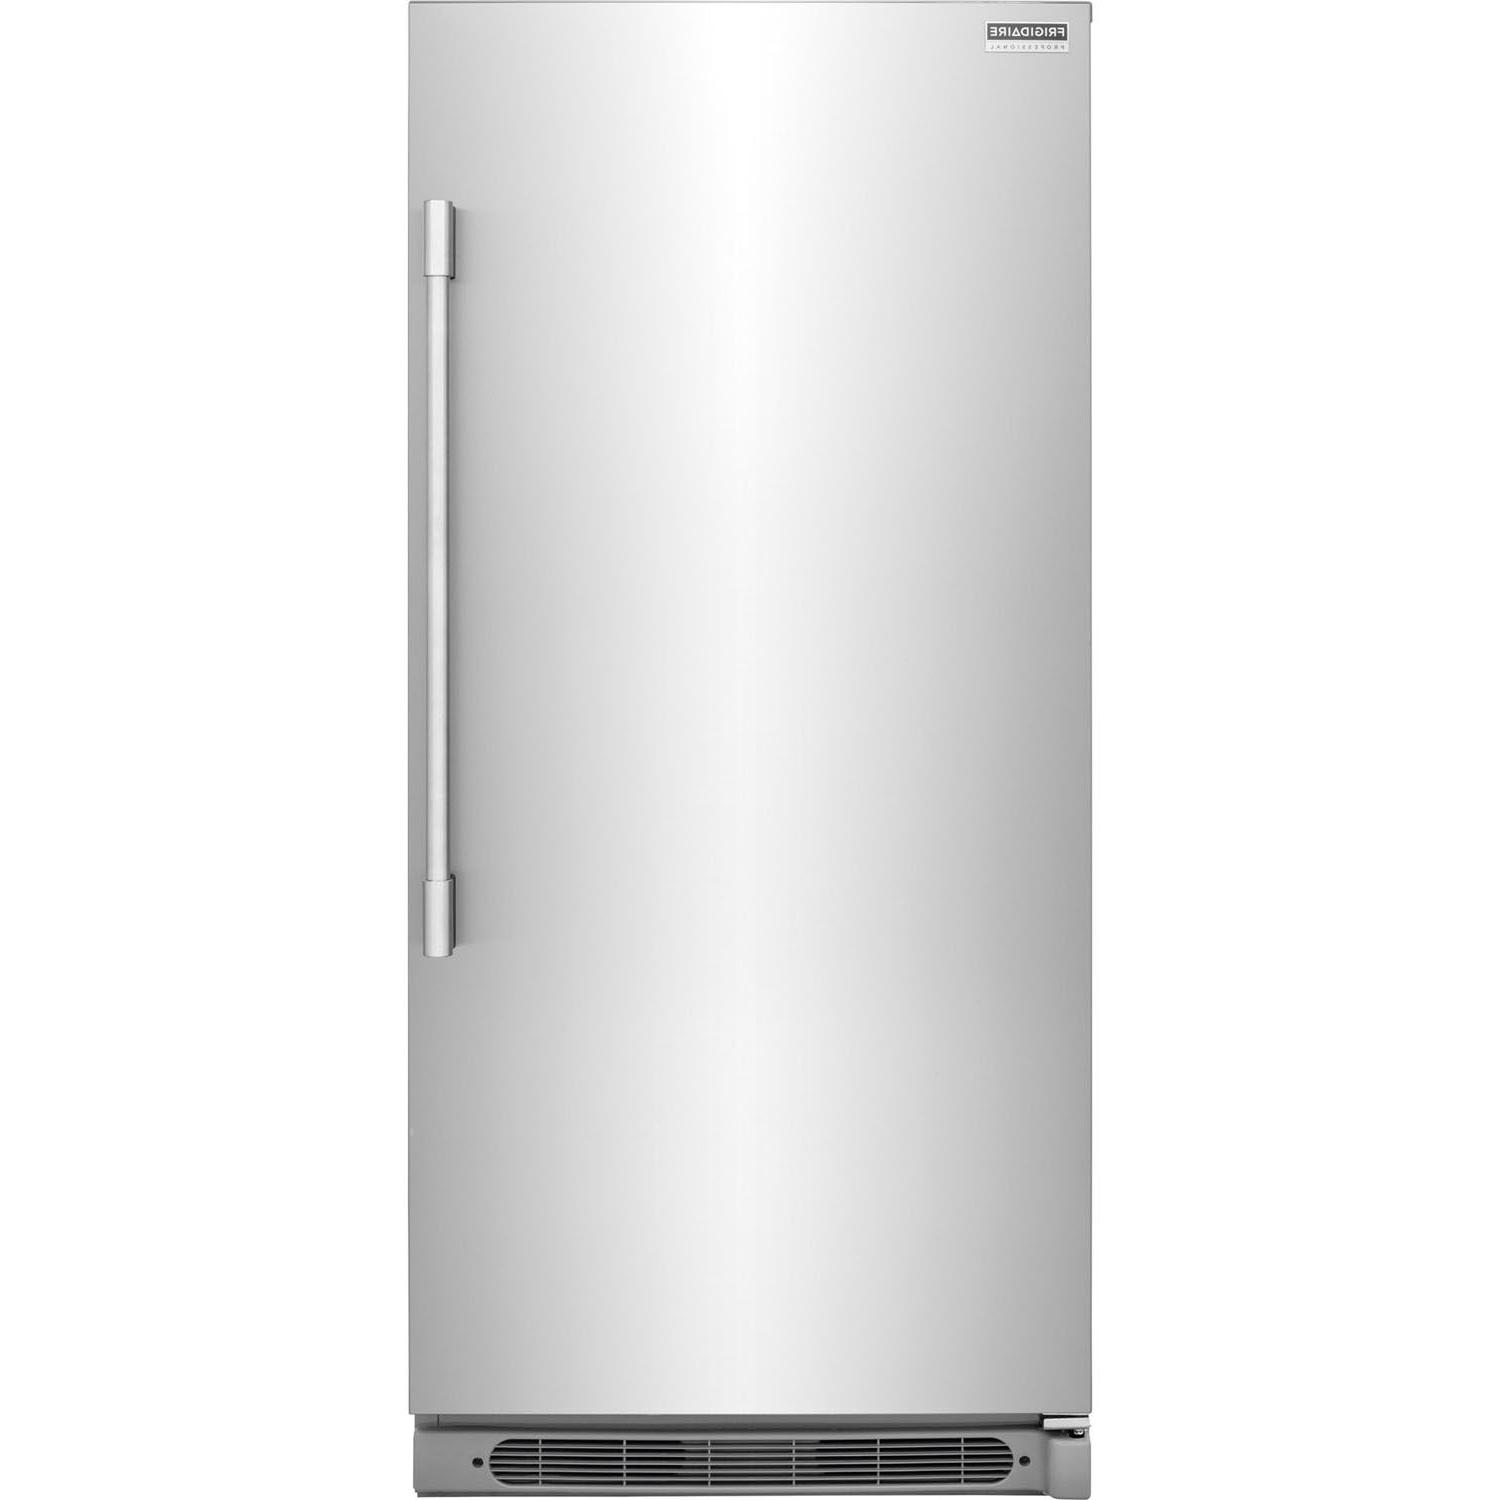 professional stainless steel upright all freezer fpfu19f8rf